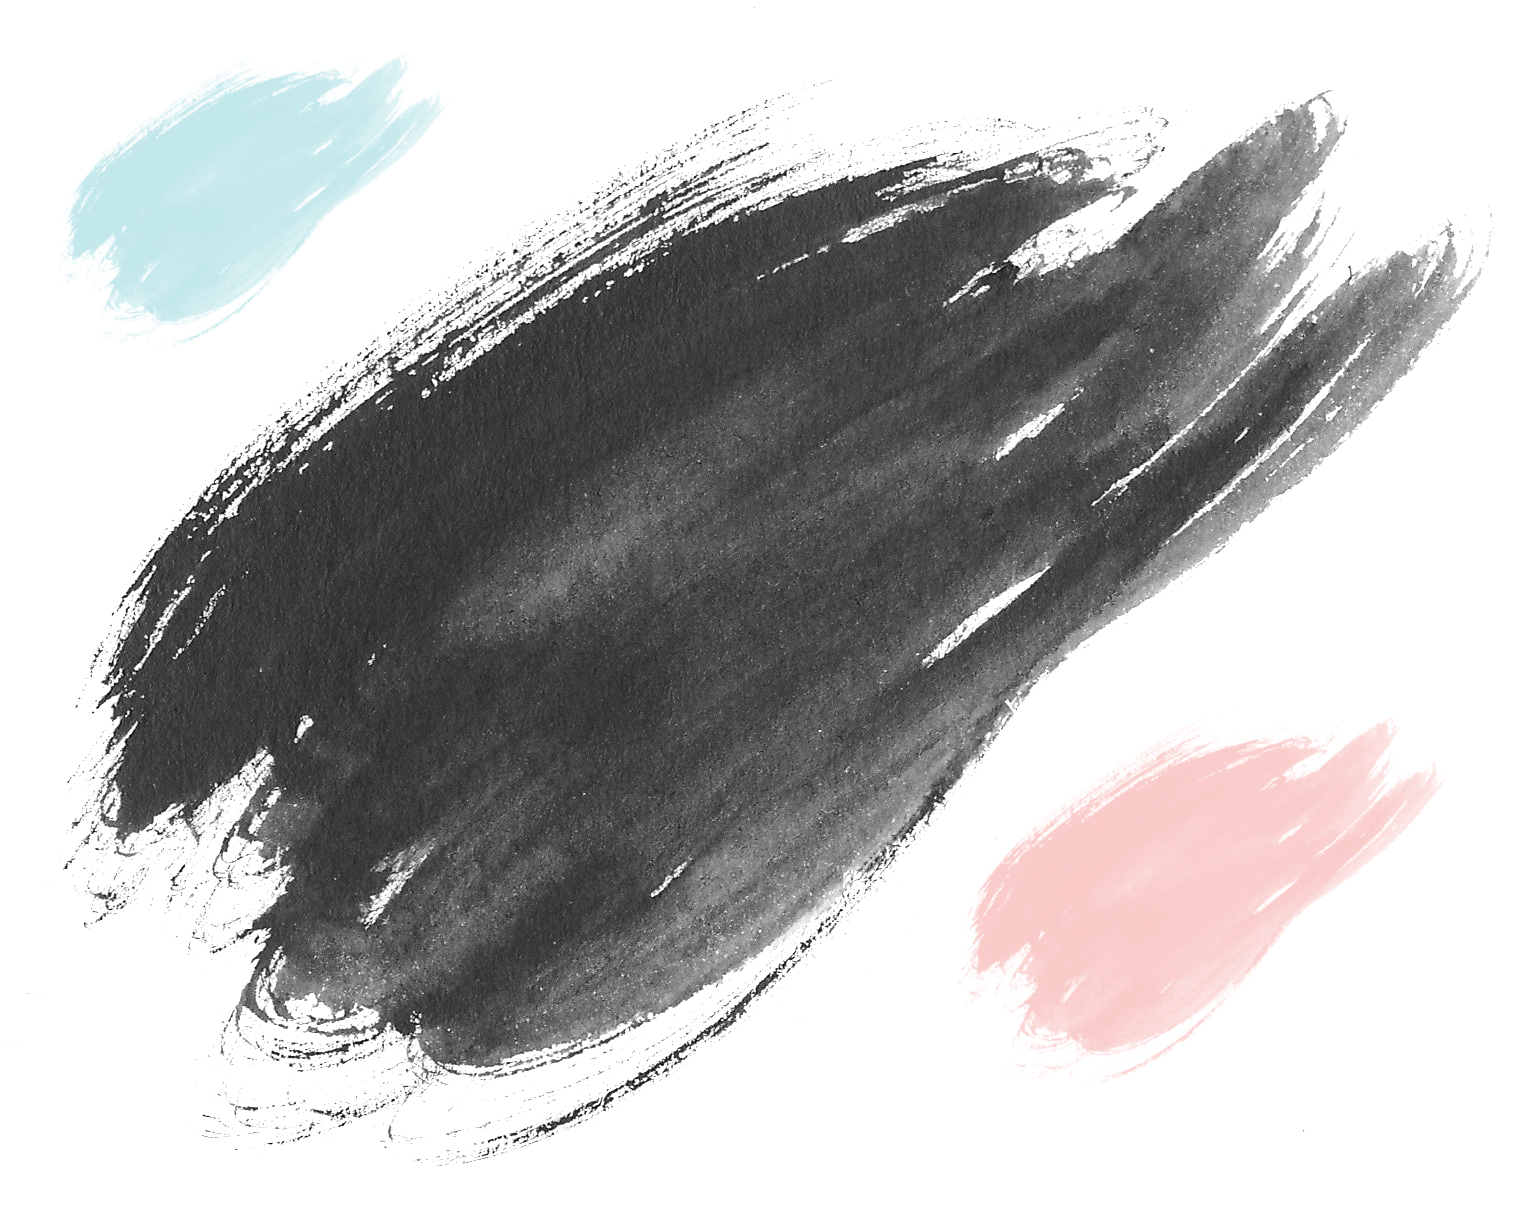 Watercolor Photoshop Brushes #2 example image 3